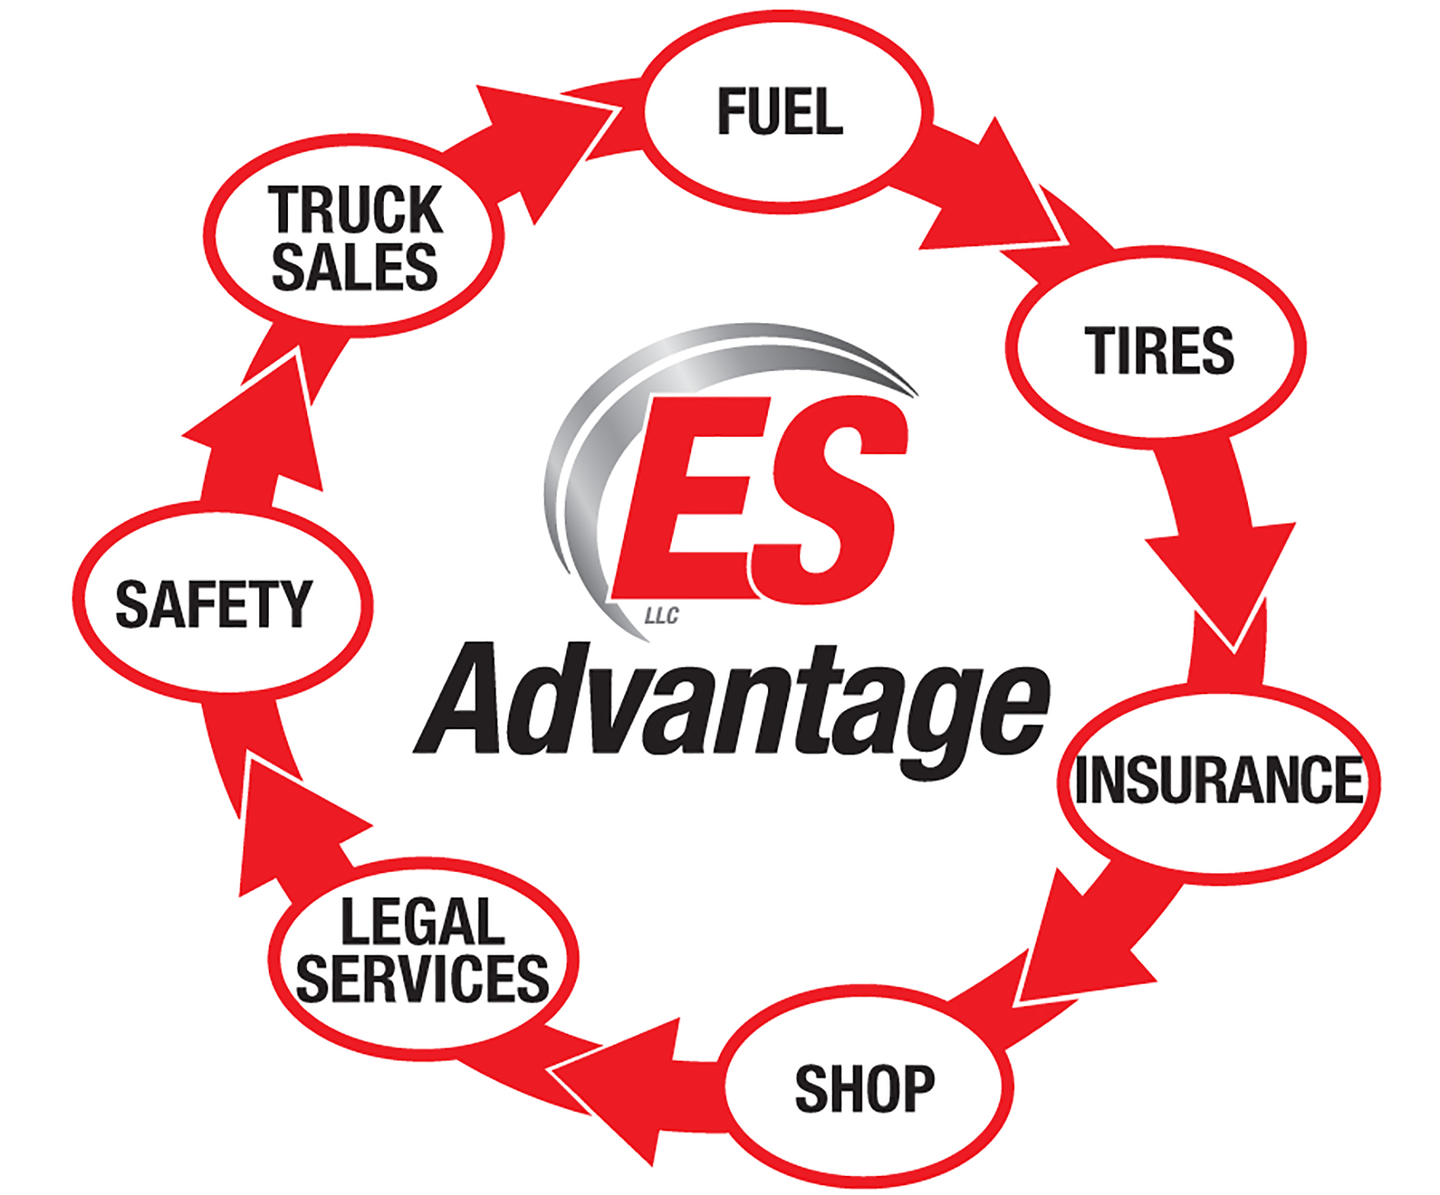 The company notes that it understands the importance of going beyond discount offers to providing a full set of services.  For the ES Advantage program, members can also access insurance and legal services - and more.  For insurance, bodily injury, third party liability other than trucking, workers 'compensation and workers' compensation are available.